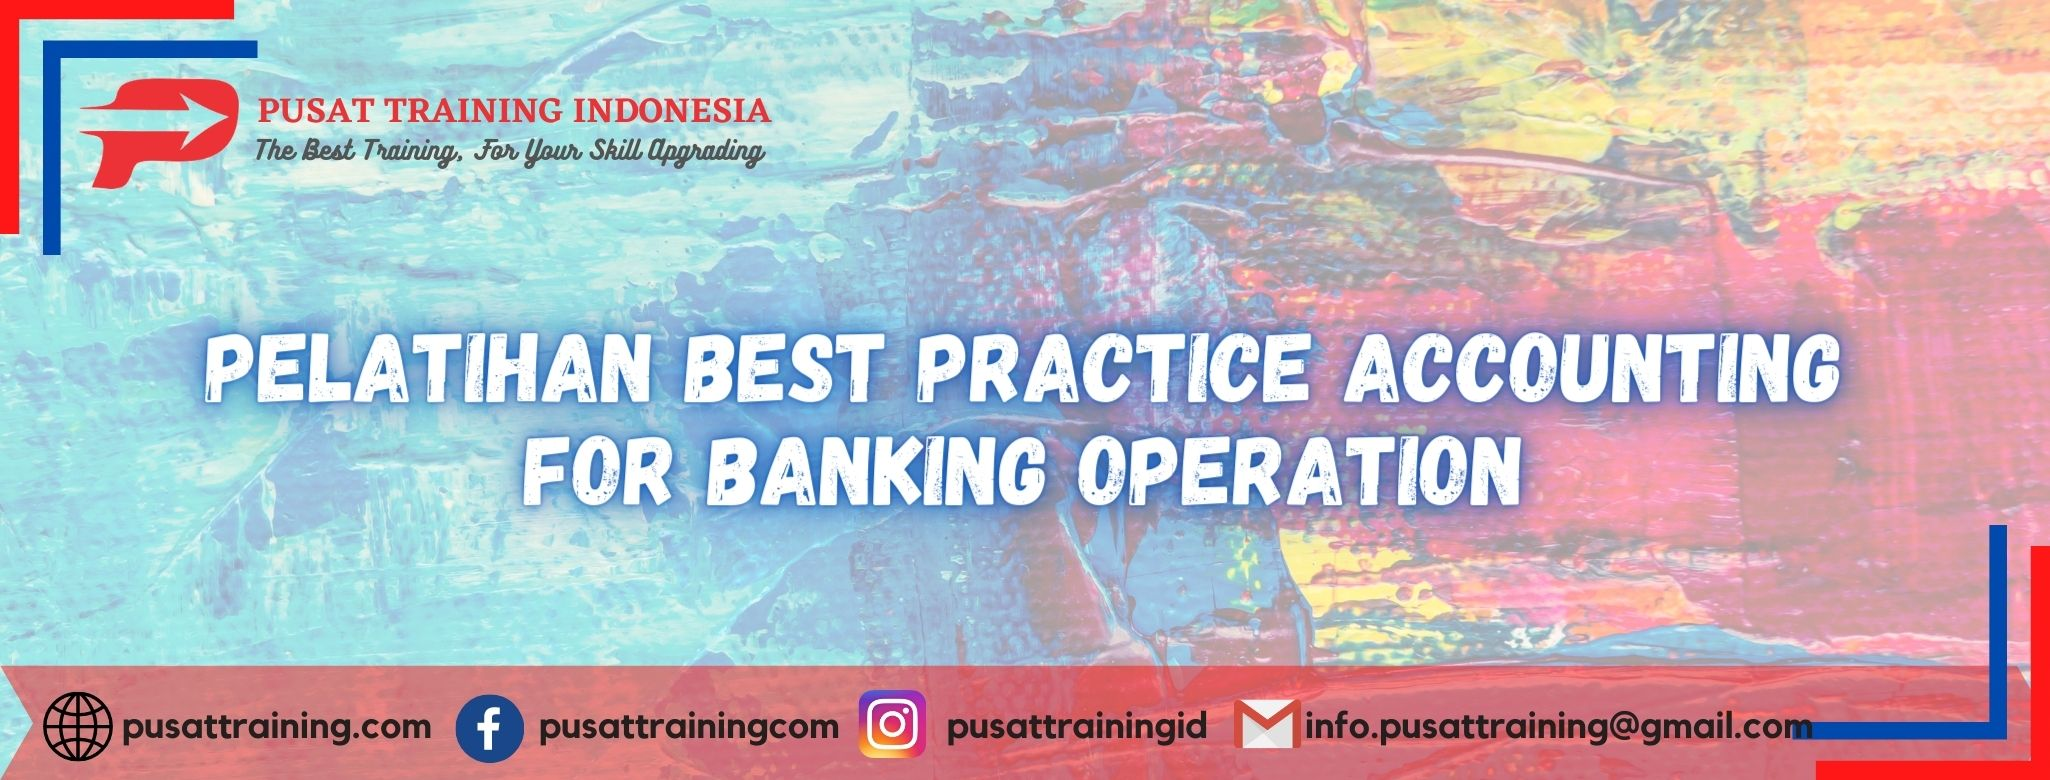 Pelatihan-Best-Practice-Accounting-For-Banking-Operation